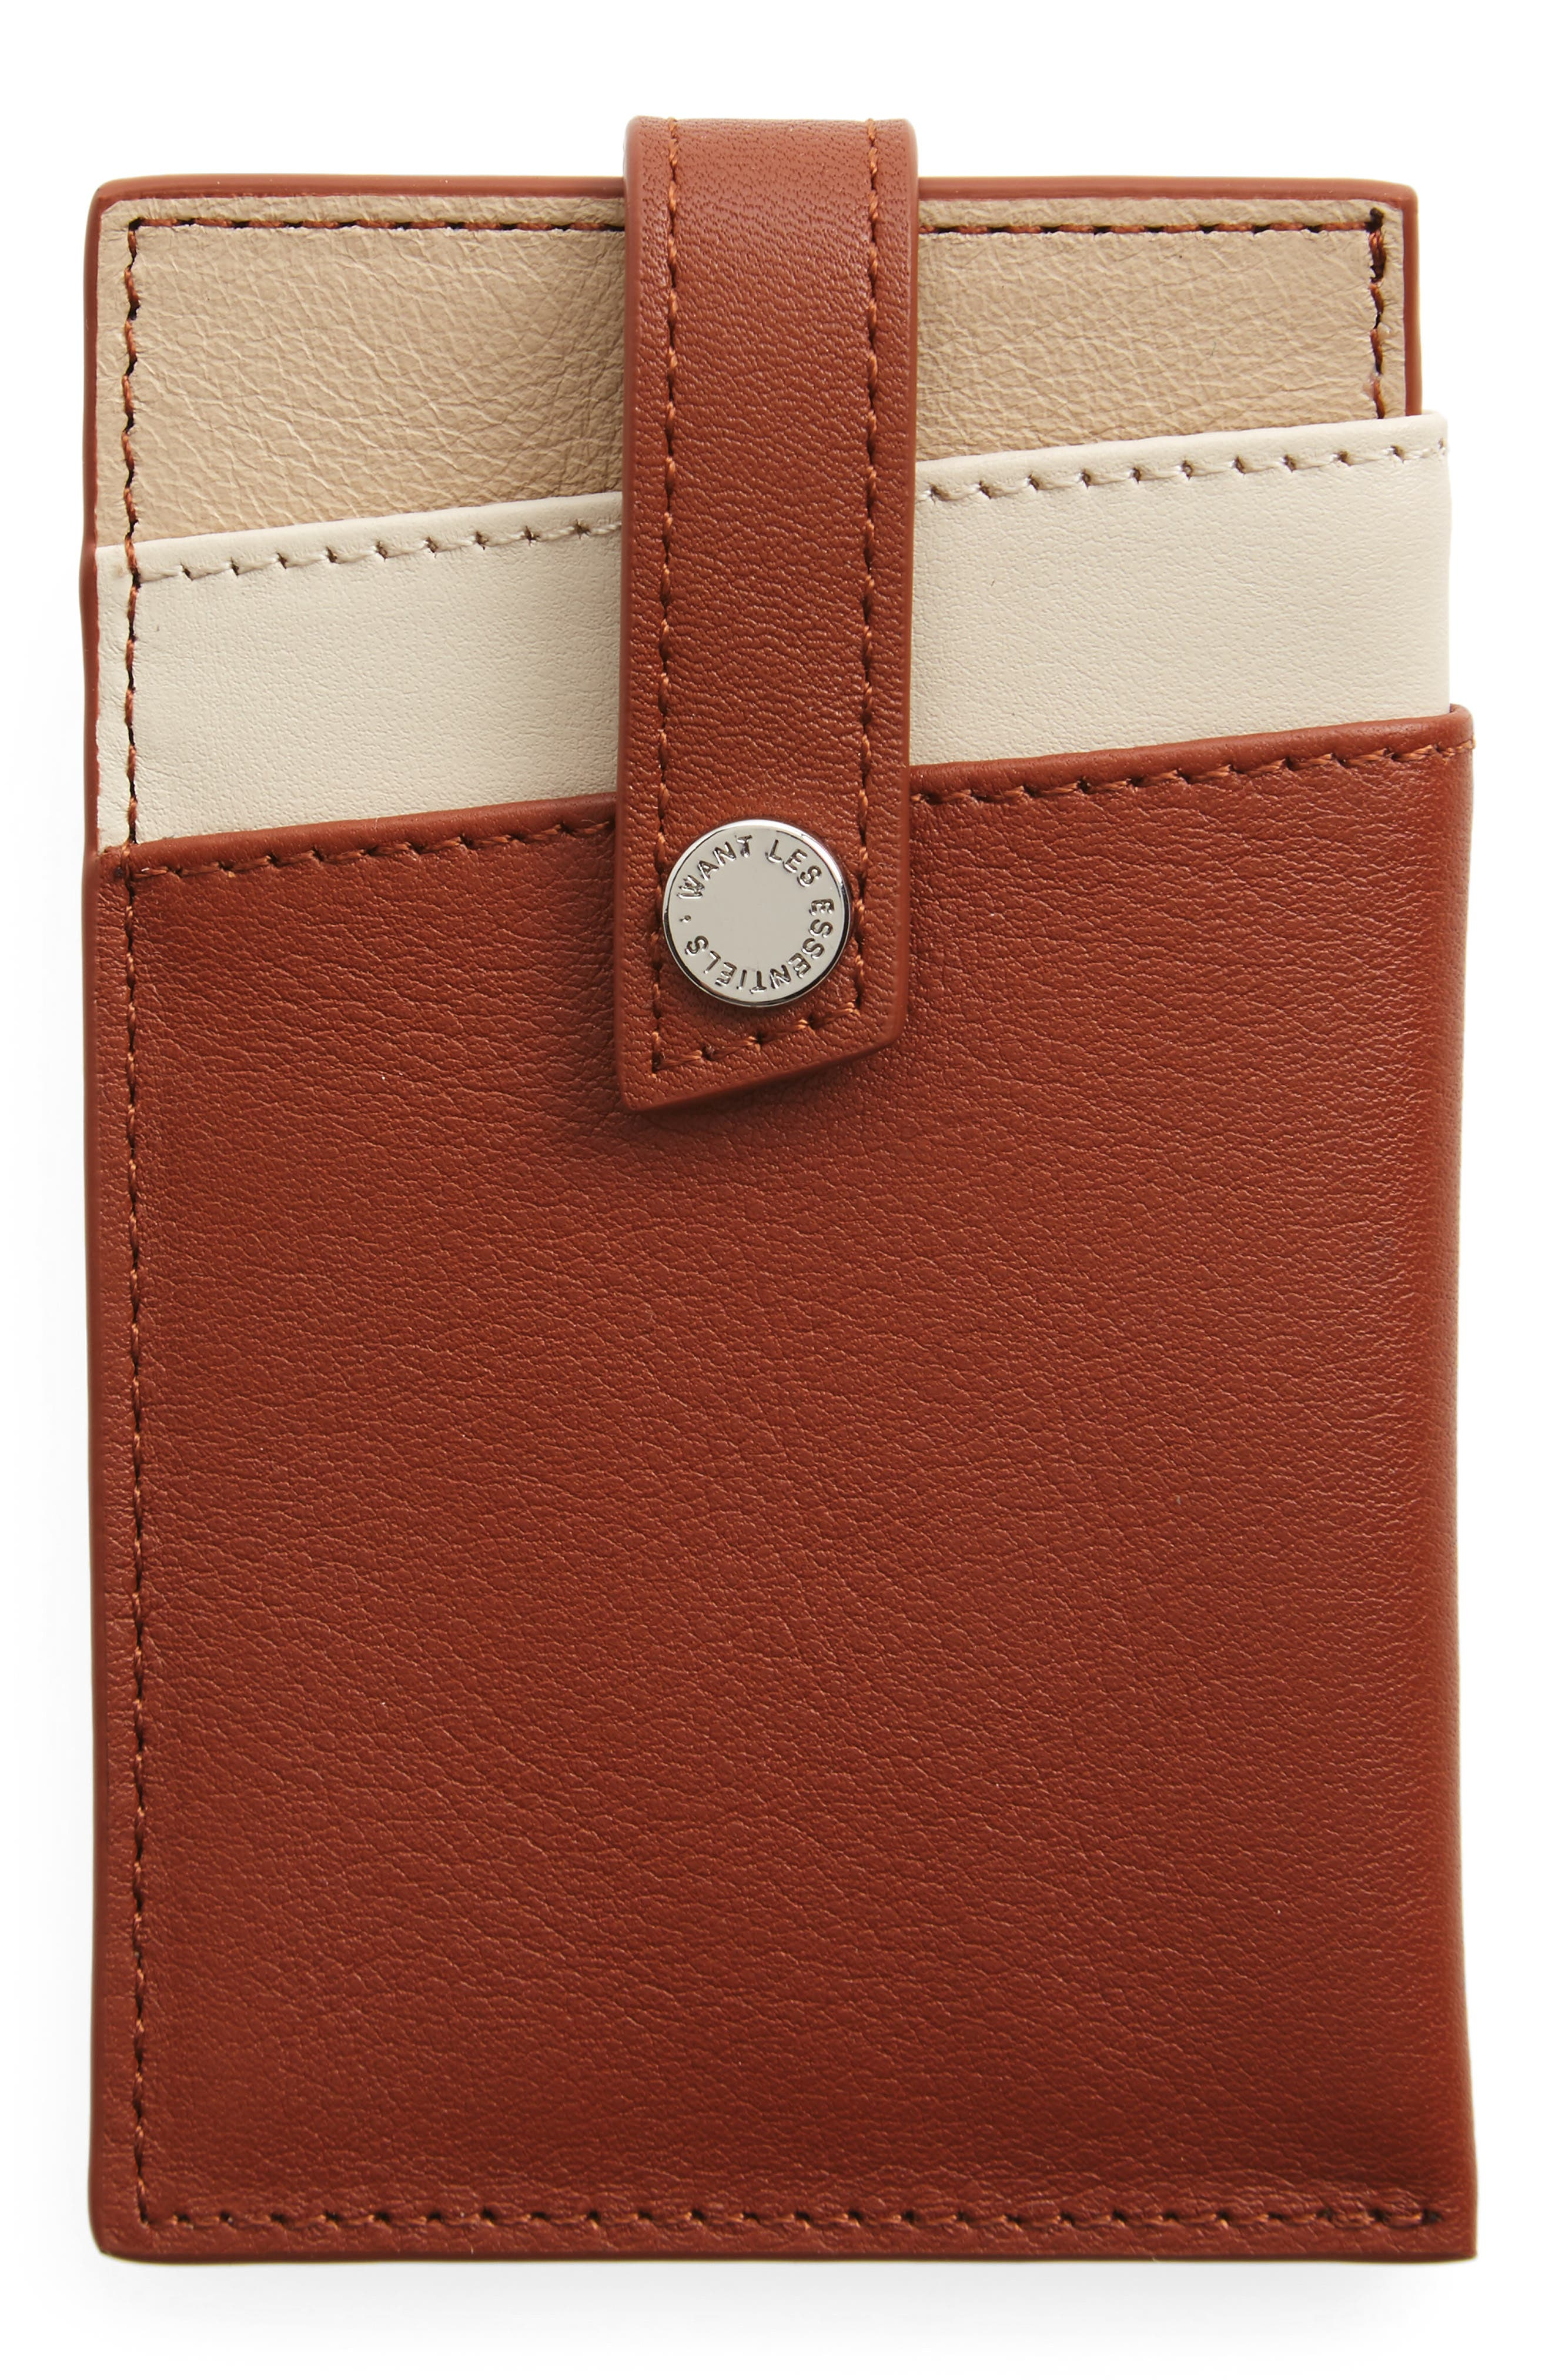 'Kennedy' Leather Money Clip Card Case,                             Alternate thumbnail 6, color,